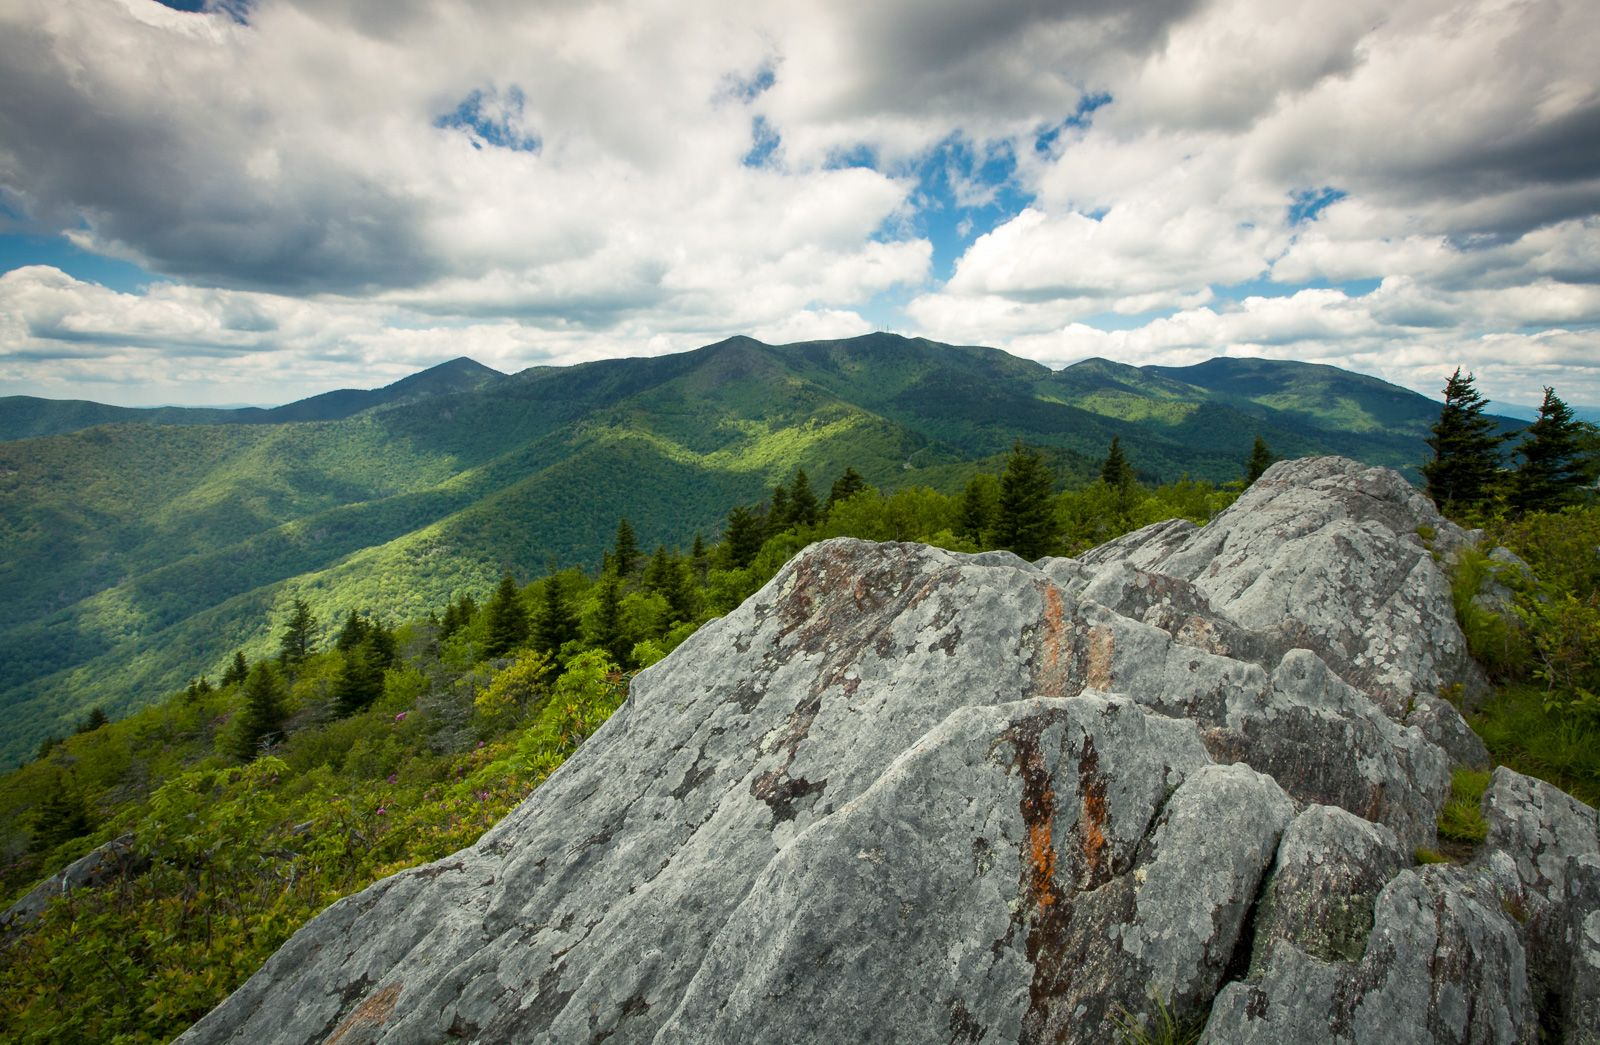 Family travel guide to the North Carolina outdoors